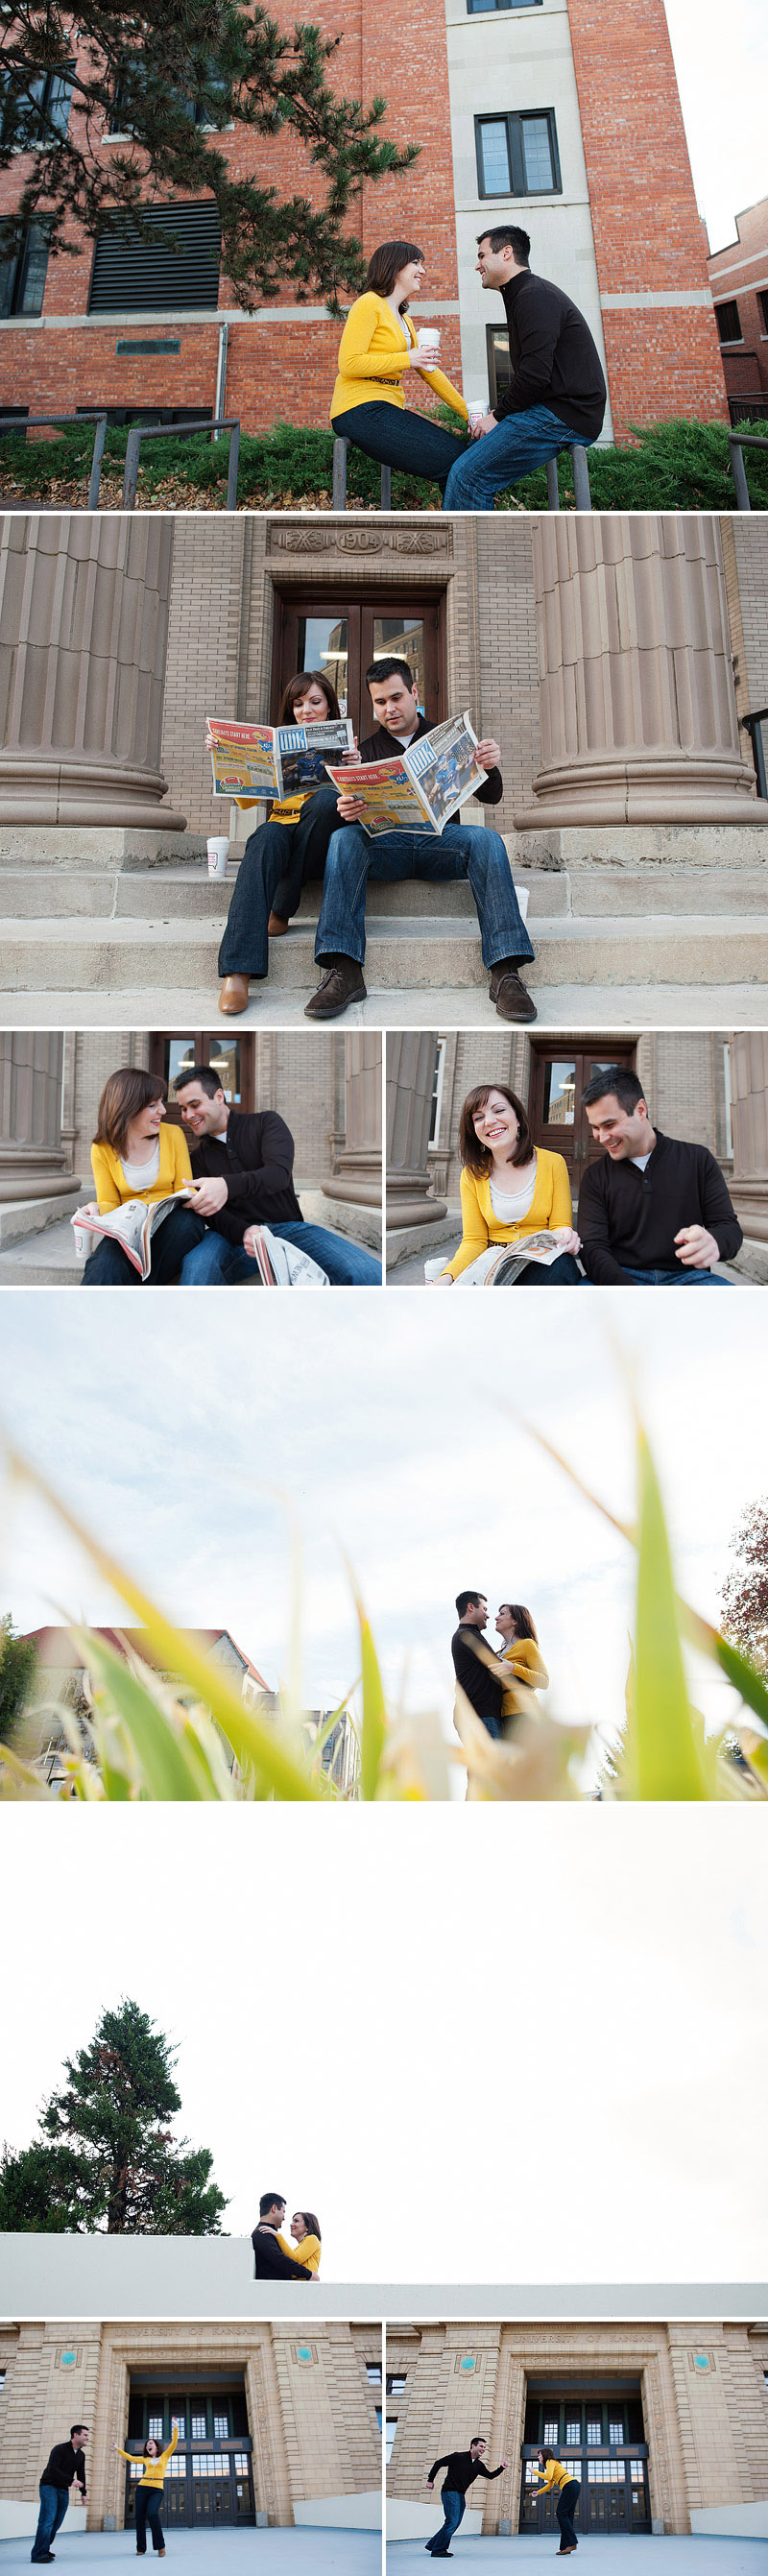 Fun engagement photos on KU campus in Lawrence.